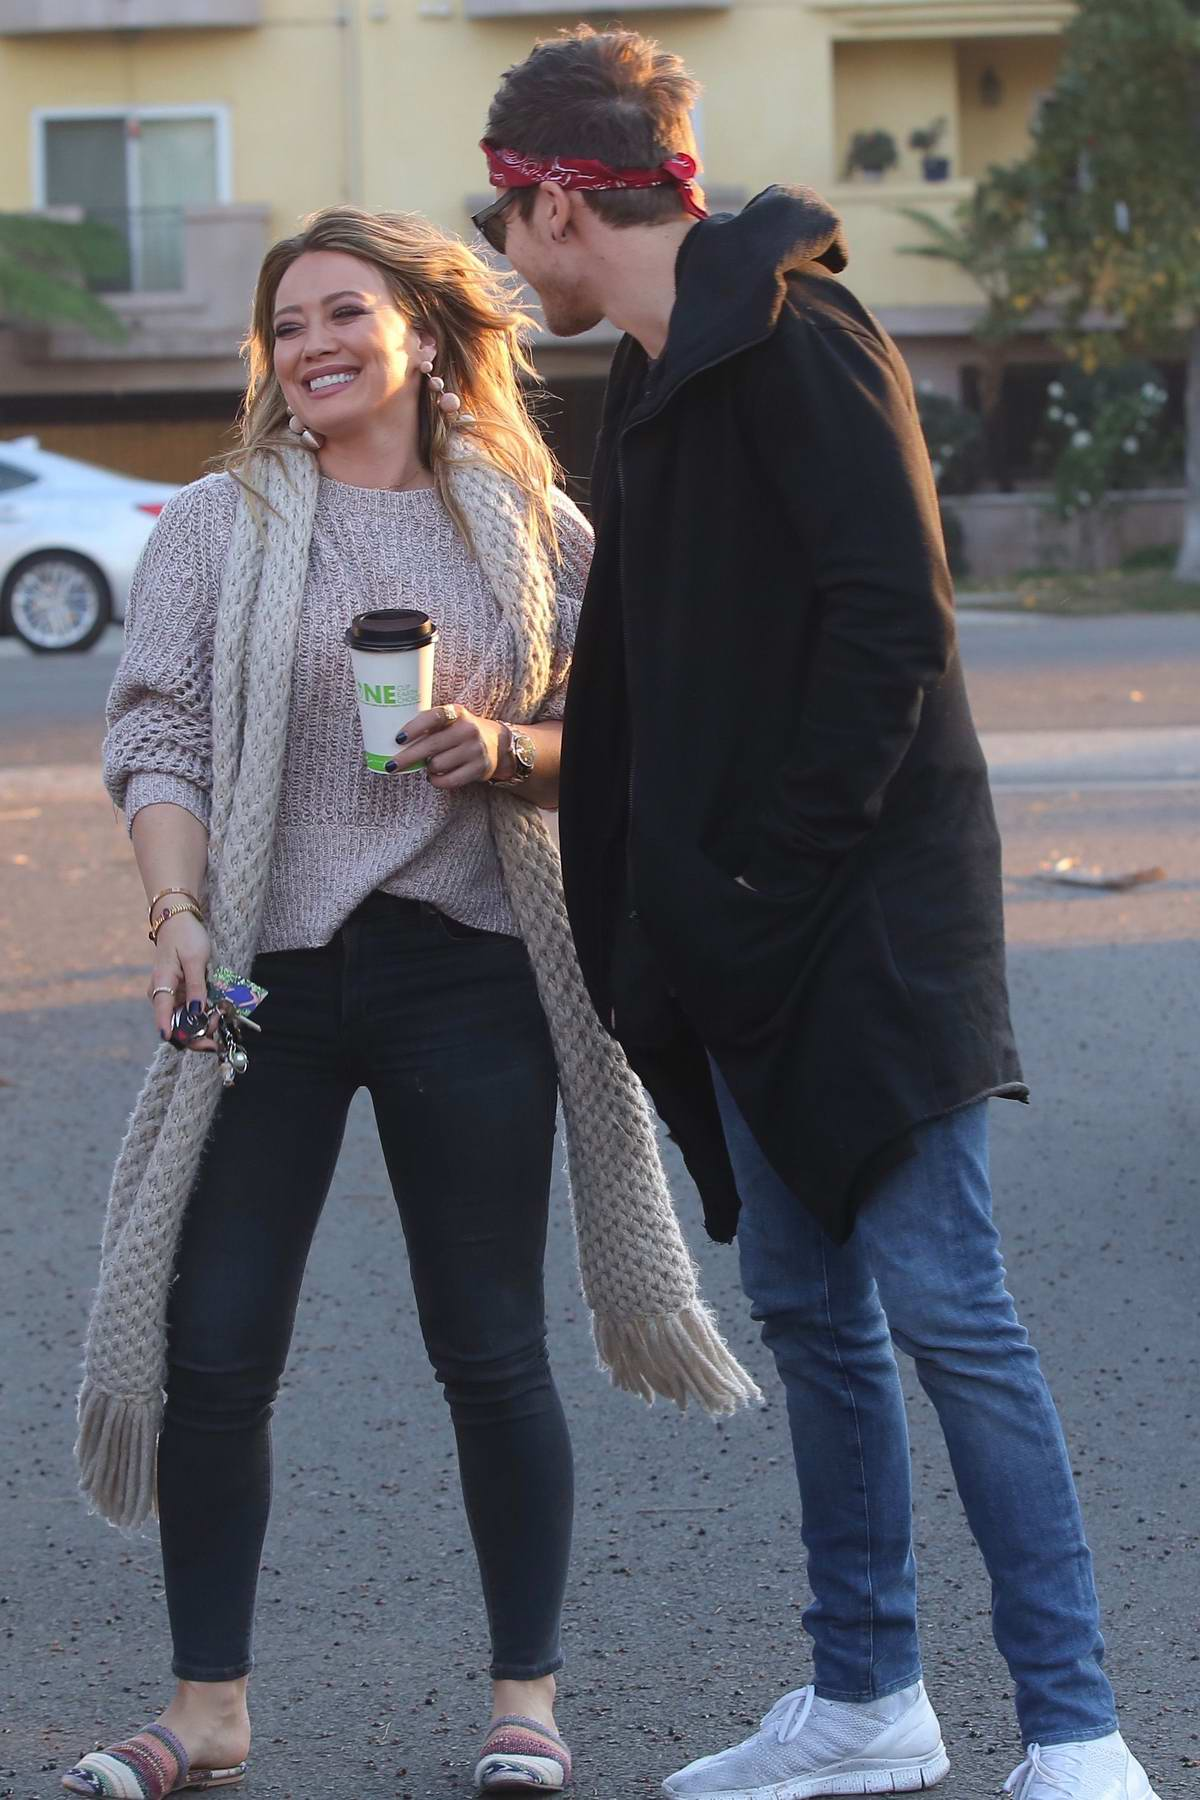 Hilary duff and boyfriend Matthew Koma share a kiss while out for coffee in Studio City, Los Angeles